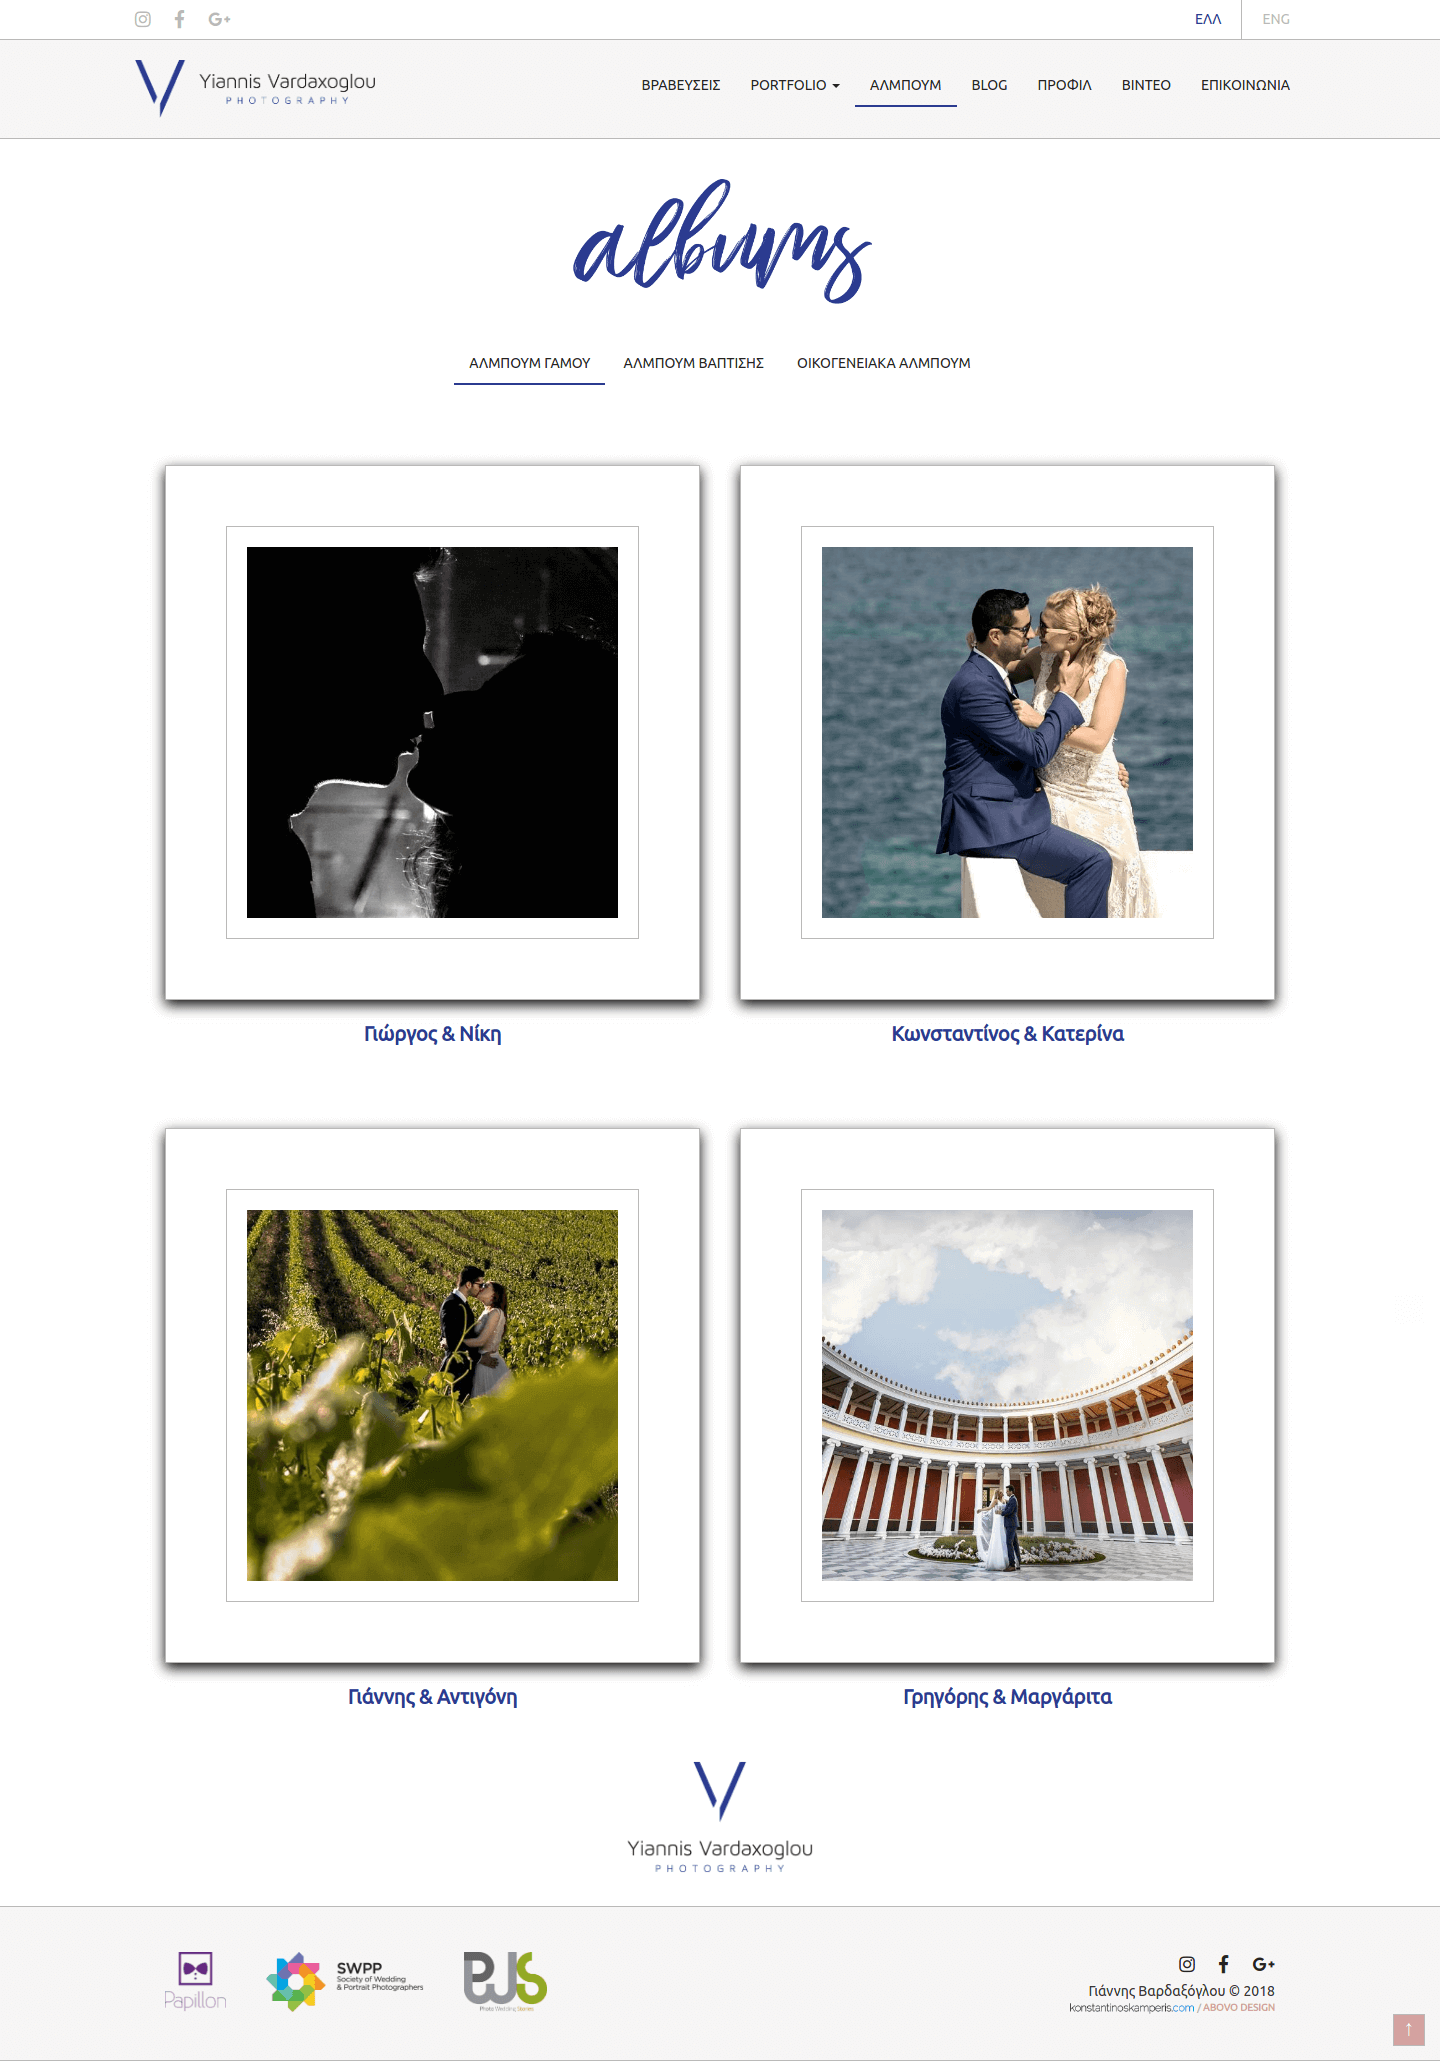 Albums page of Yiannis Vardaxoglou site